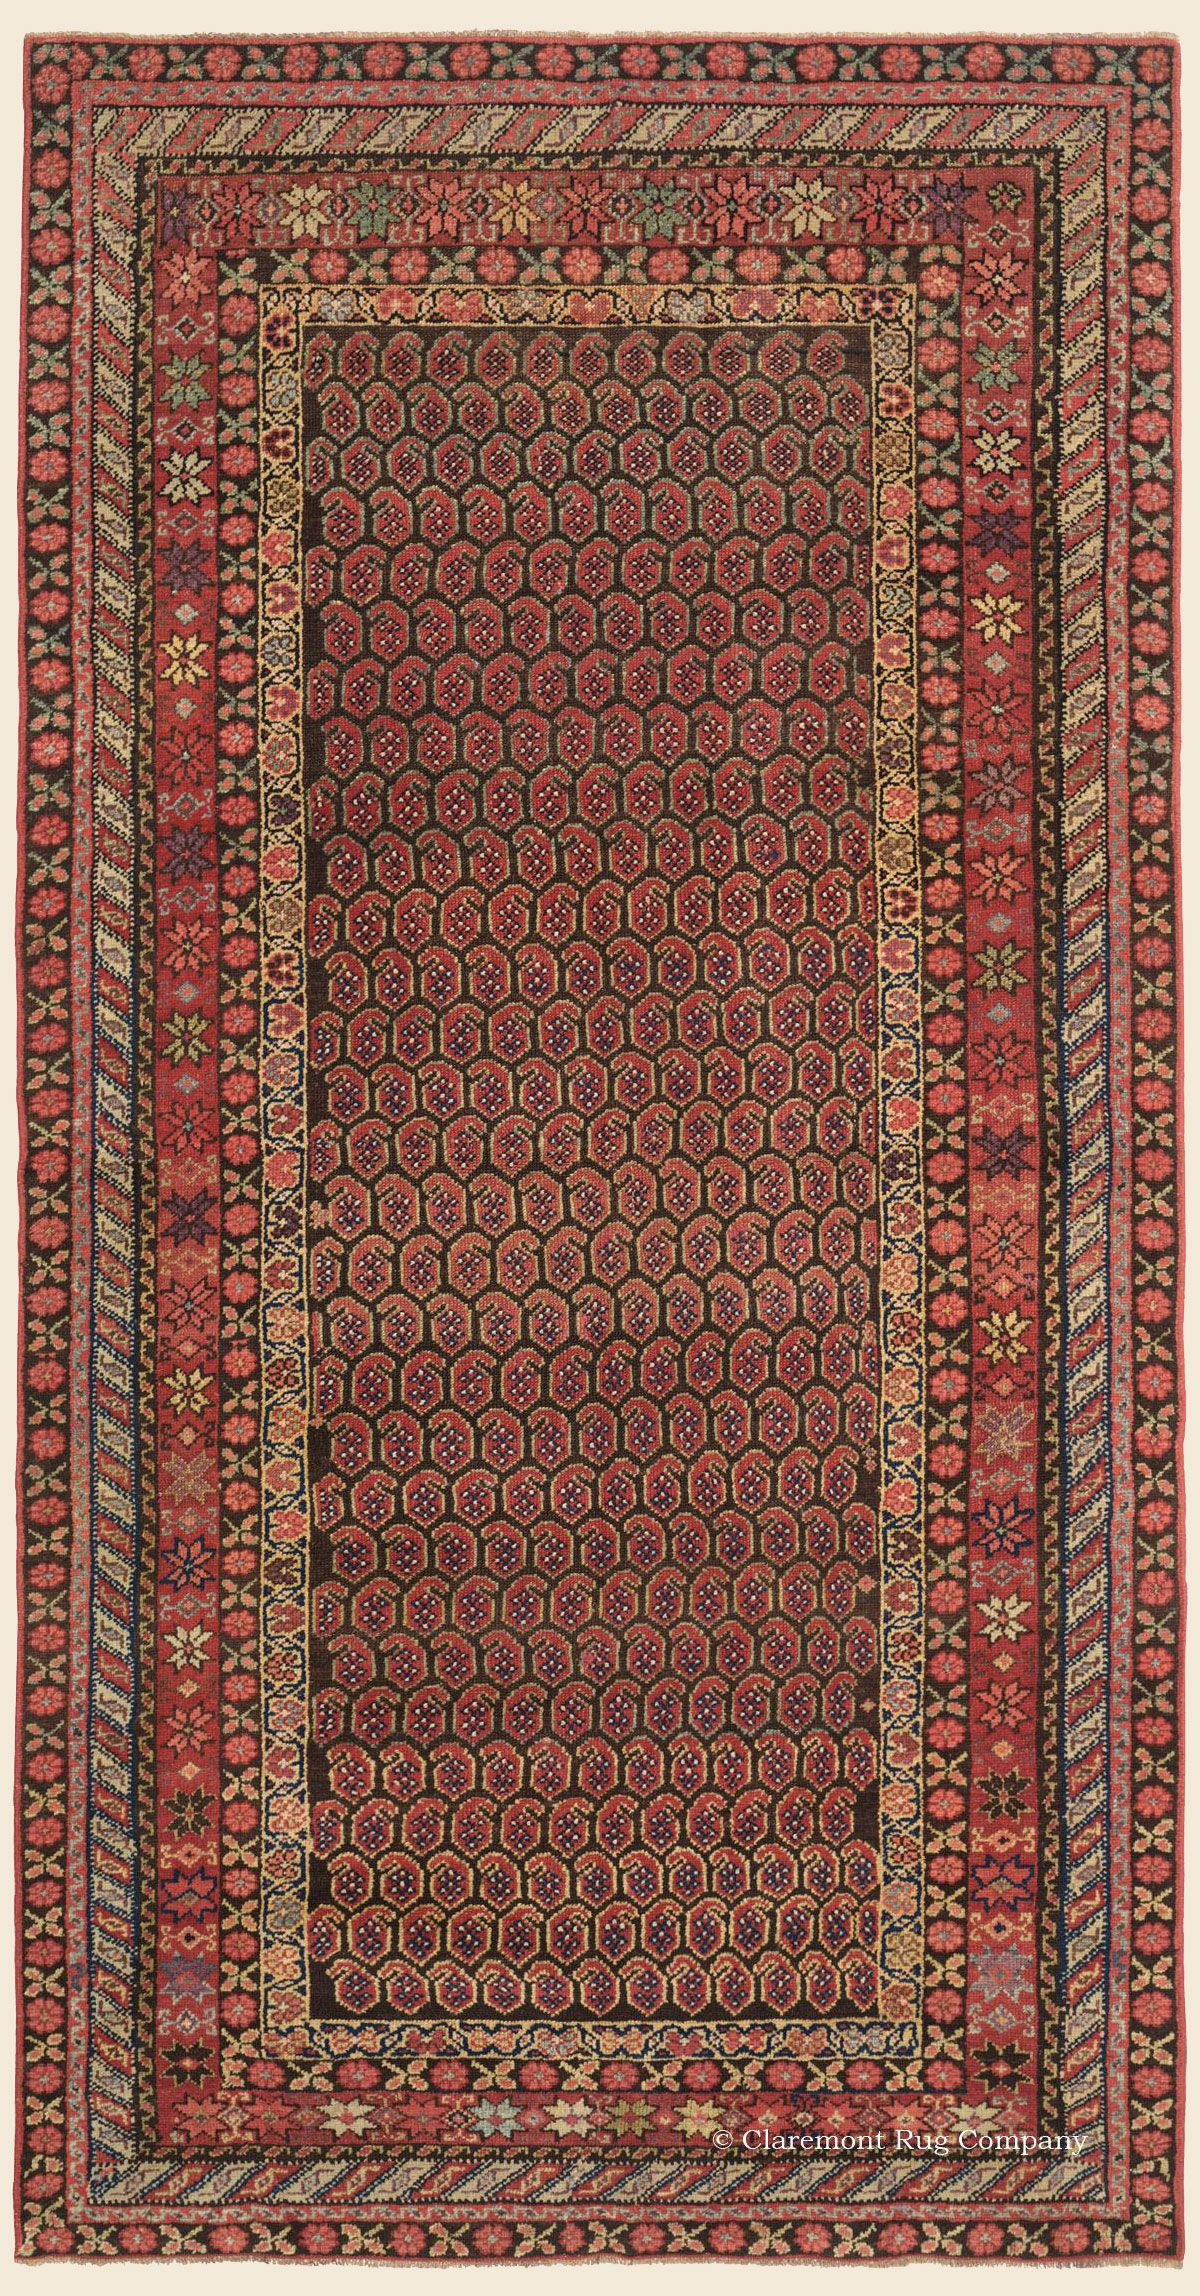 Exquisite 19th Early 20th Century Rugs From Tribal Rugs To City Oversize Carpets Elite San Francisco Bay Area Dealer Rugs On Carpet Tribal Rug Asian Rugs